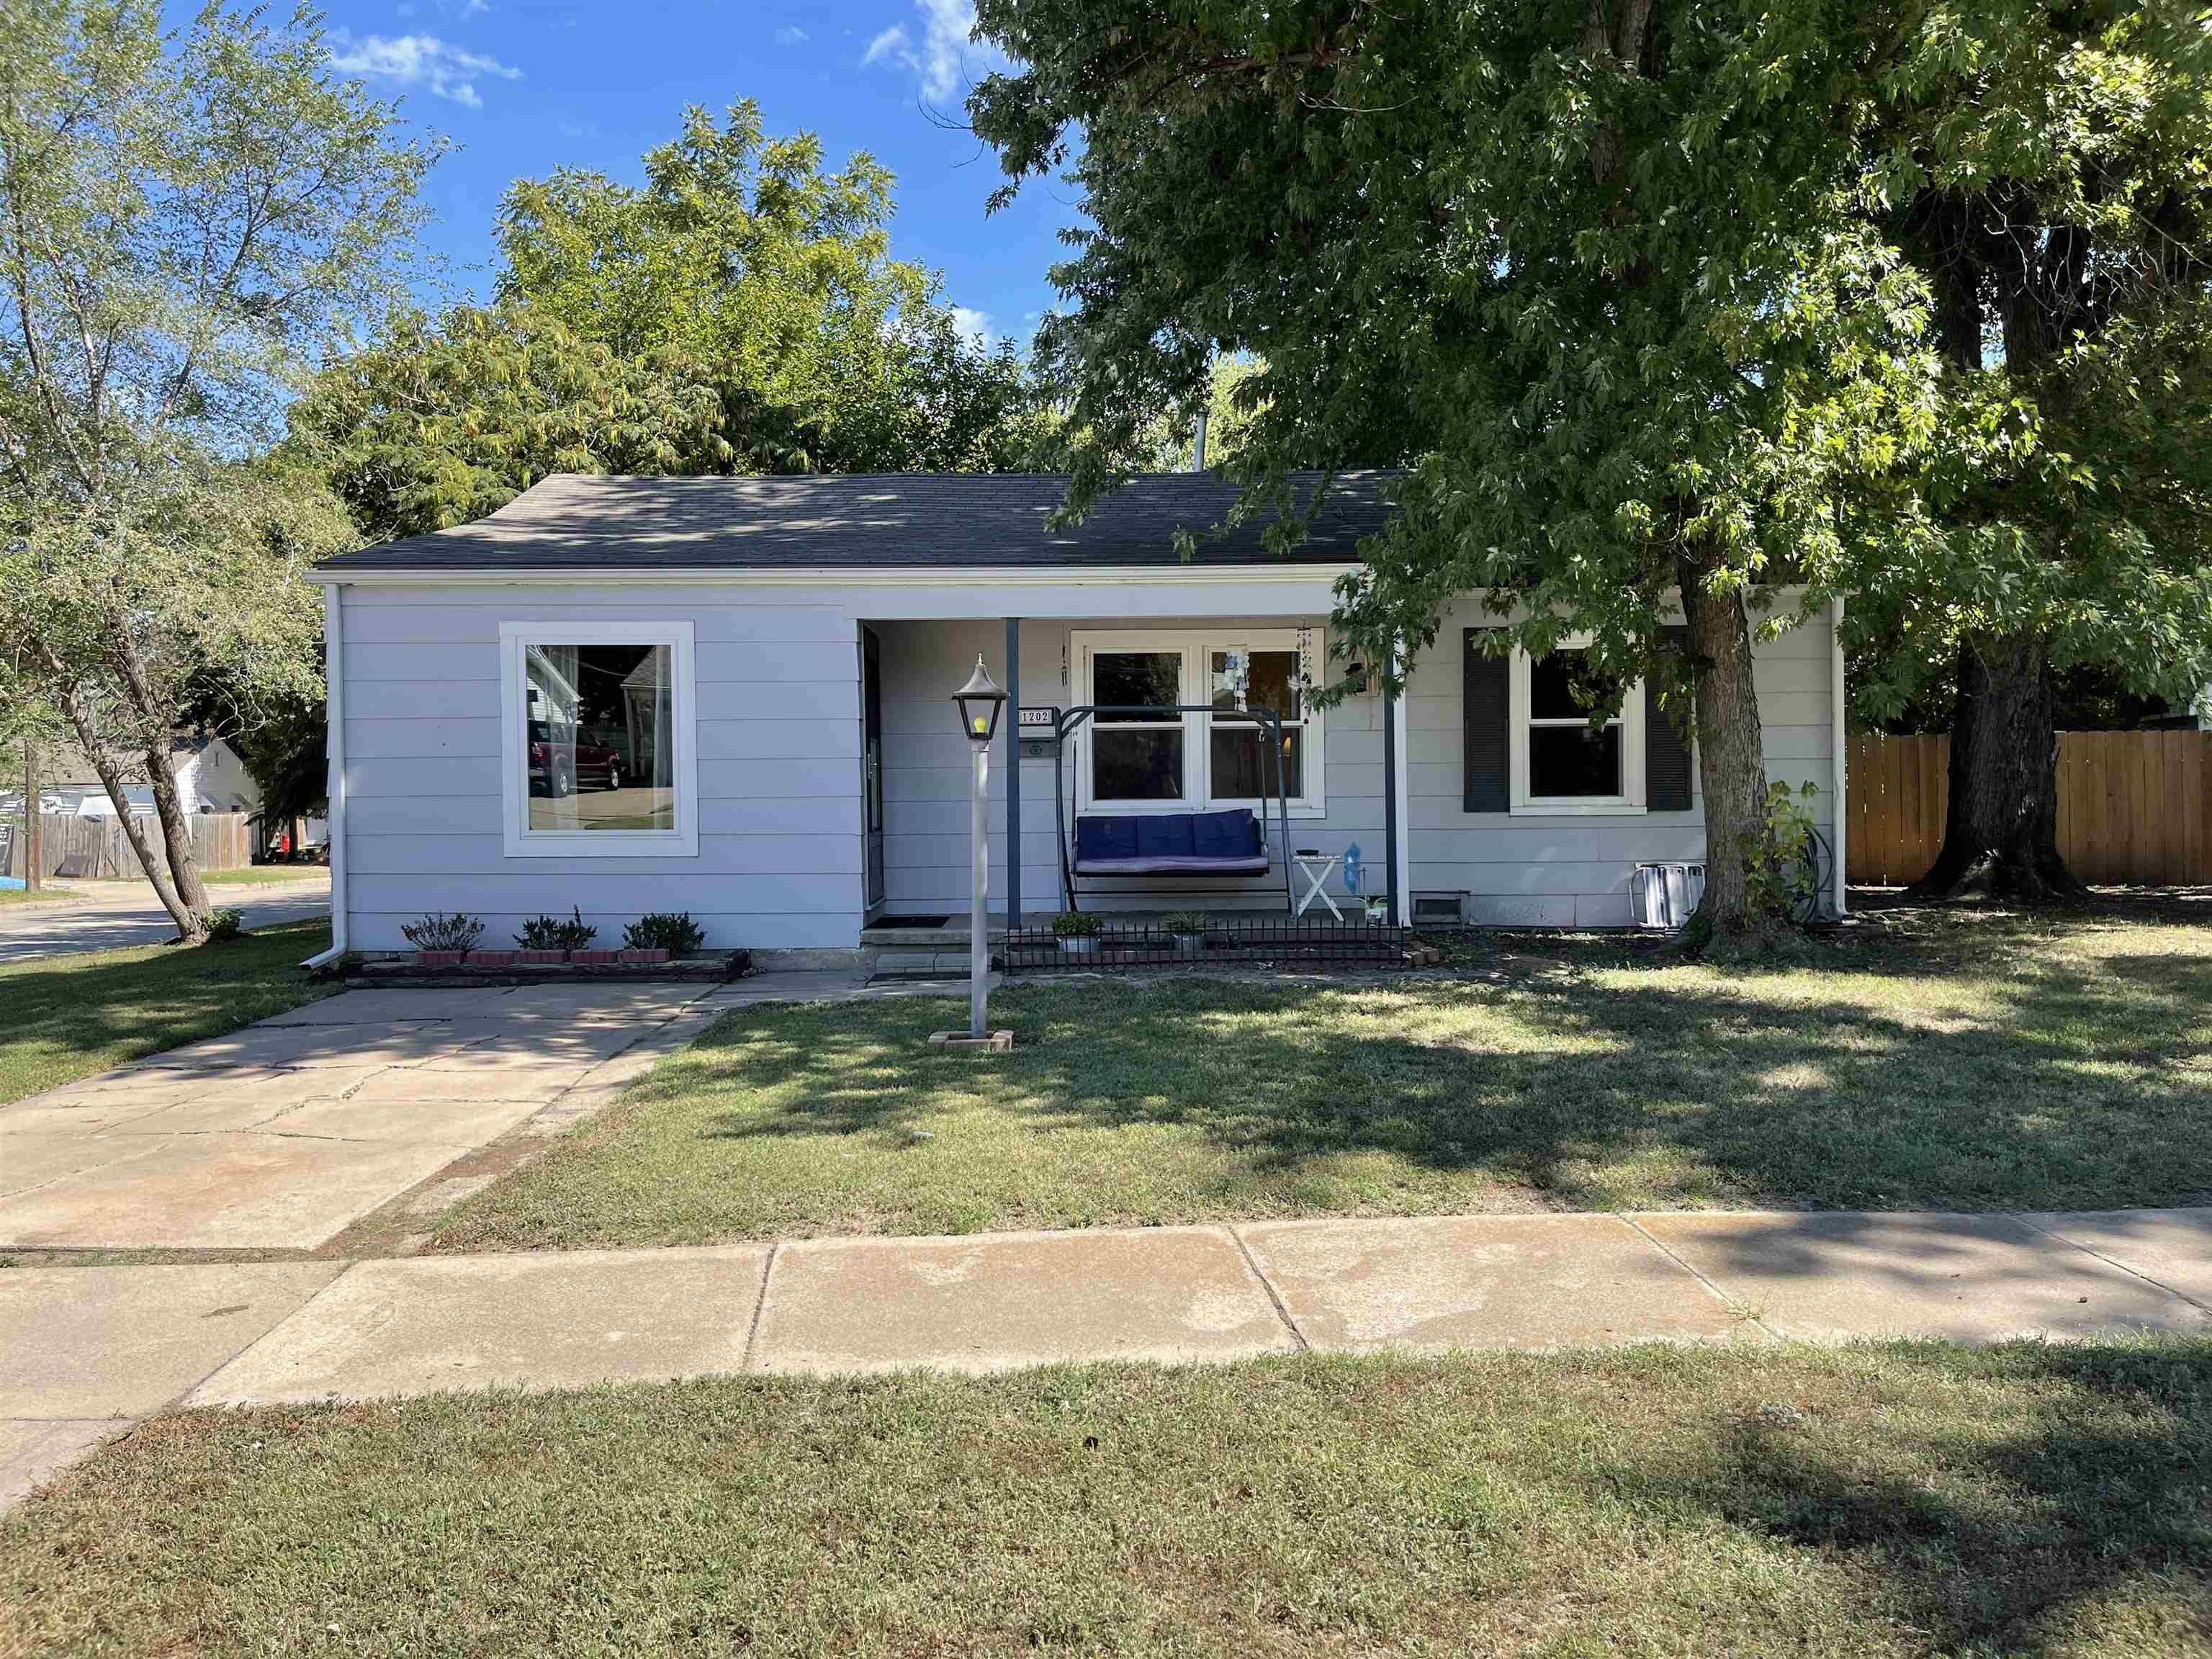 Lovely ranch style home with 3 bedrooms ready for a new owner!  Corner fenced lot with oversized det